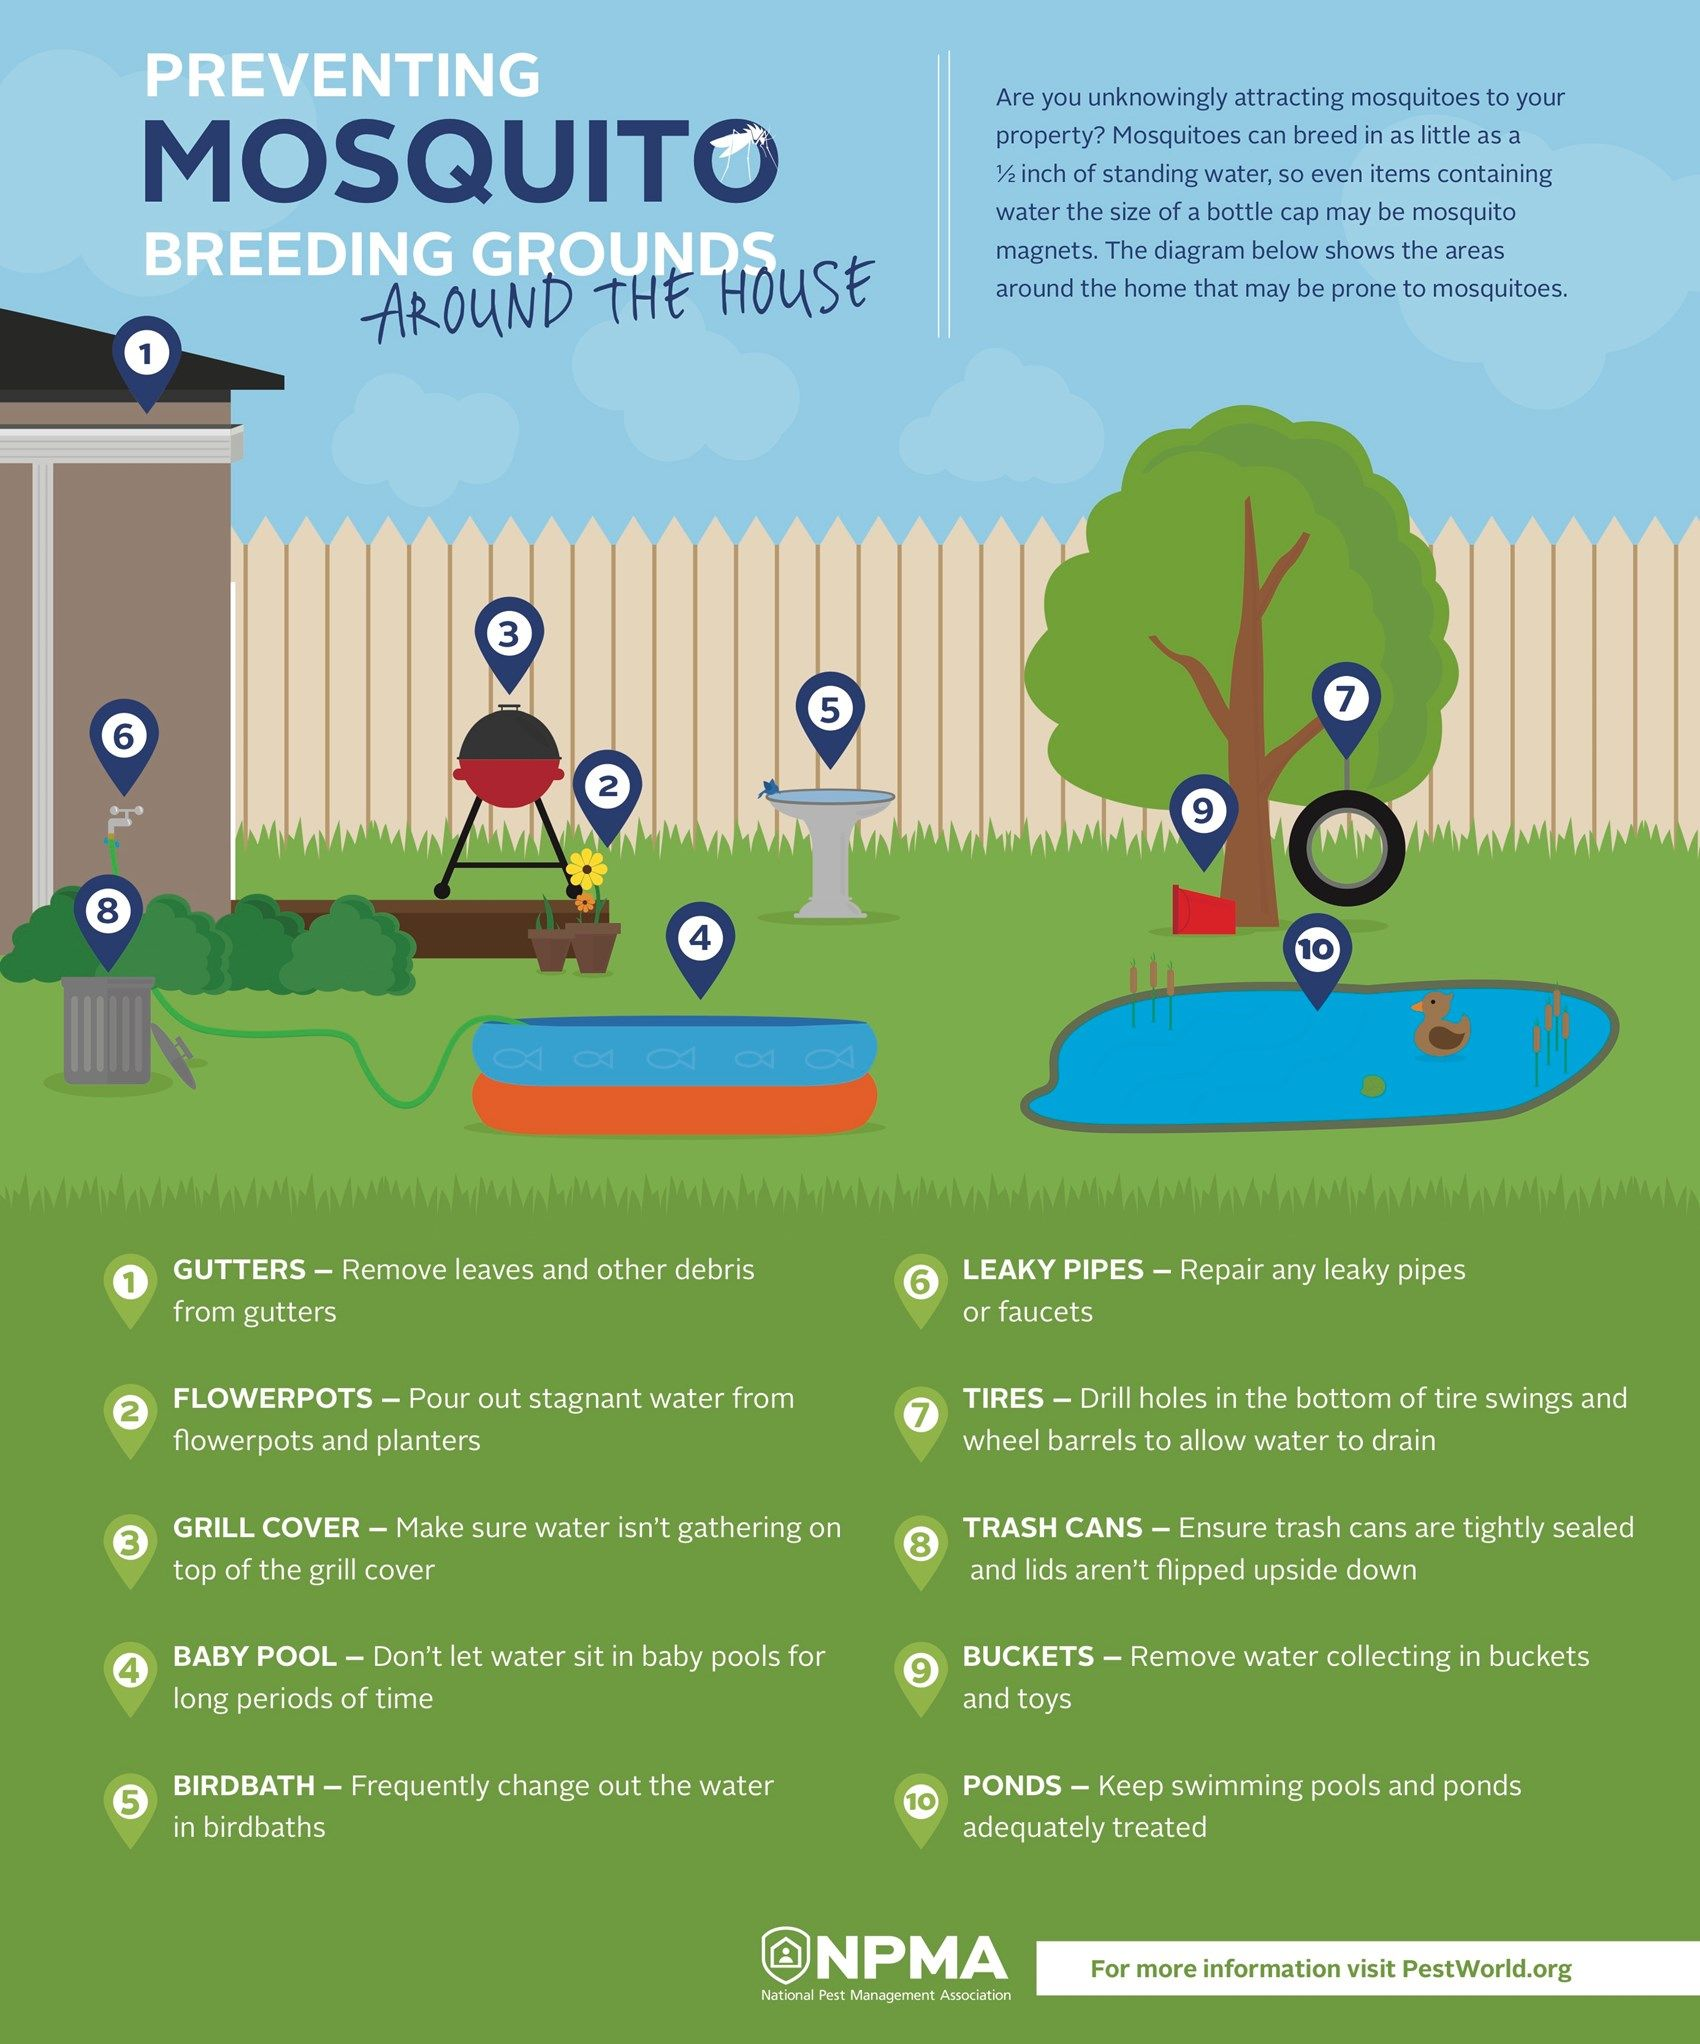 How to prevent mosquito breeding grounds around your house Ways to get rid of mosquitoes in your house